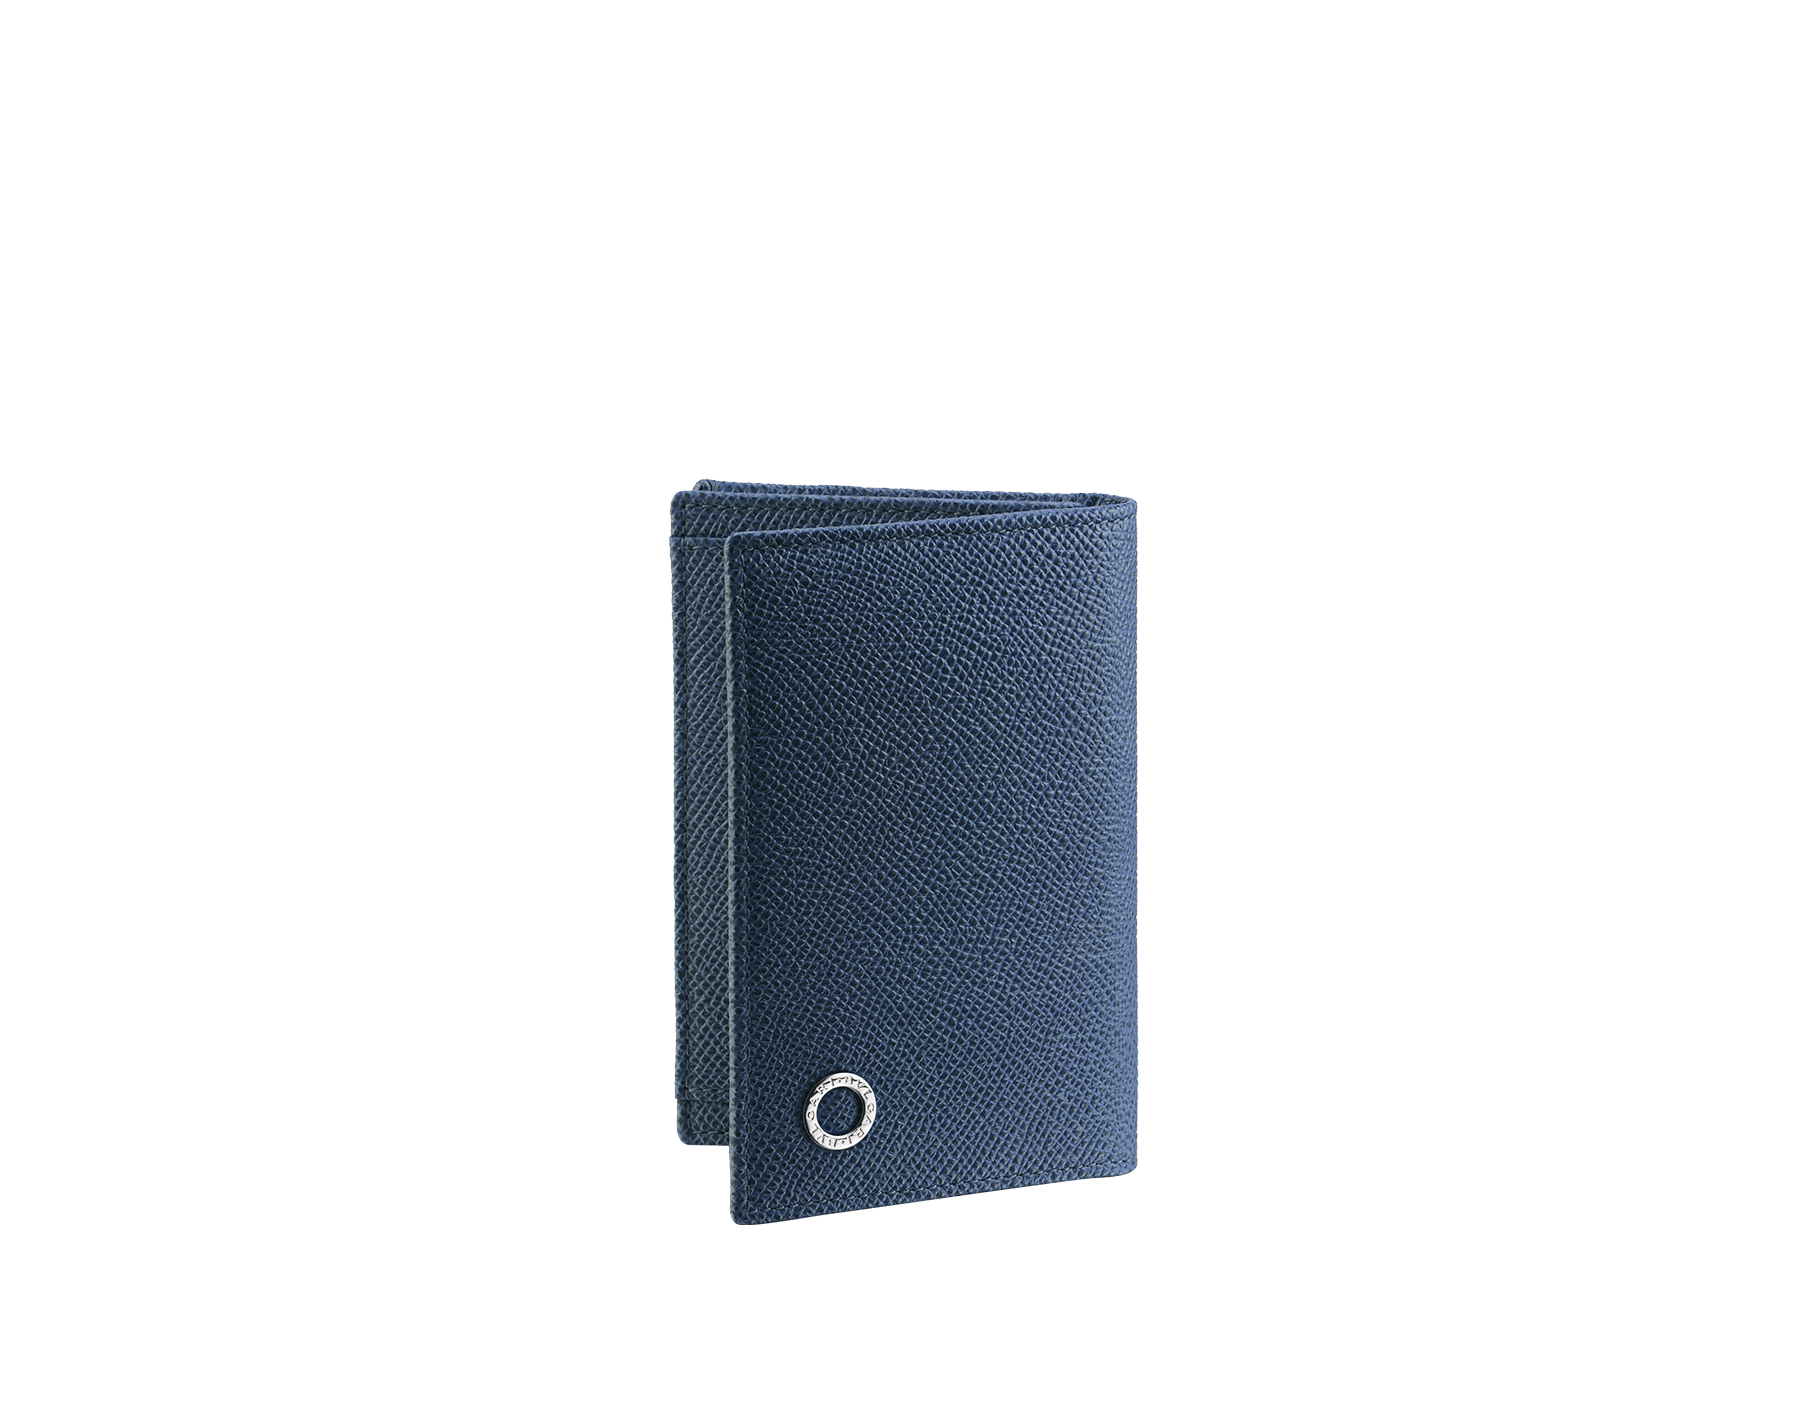 Business card holder in denim sapphire grain calf leather with brass palladium plated Bulgari Bulgari motif. Three credit card slots, one open pocket and business cards compartment. 280299 image 1